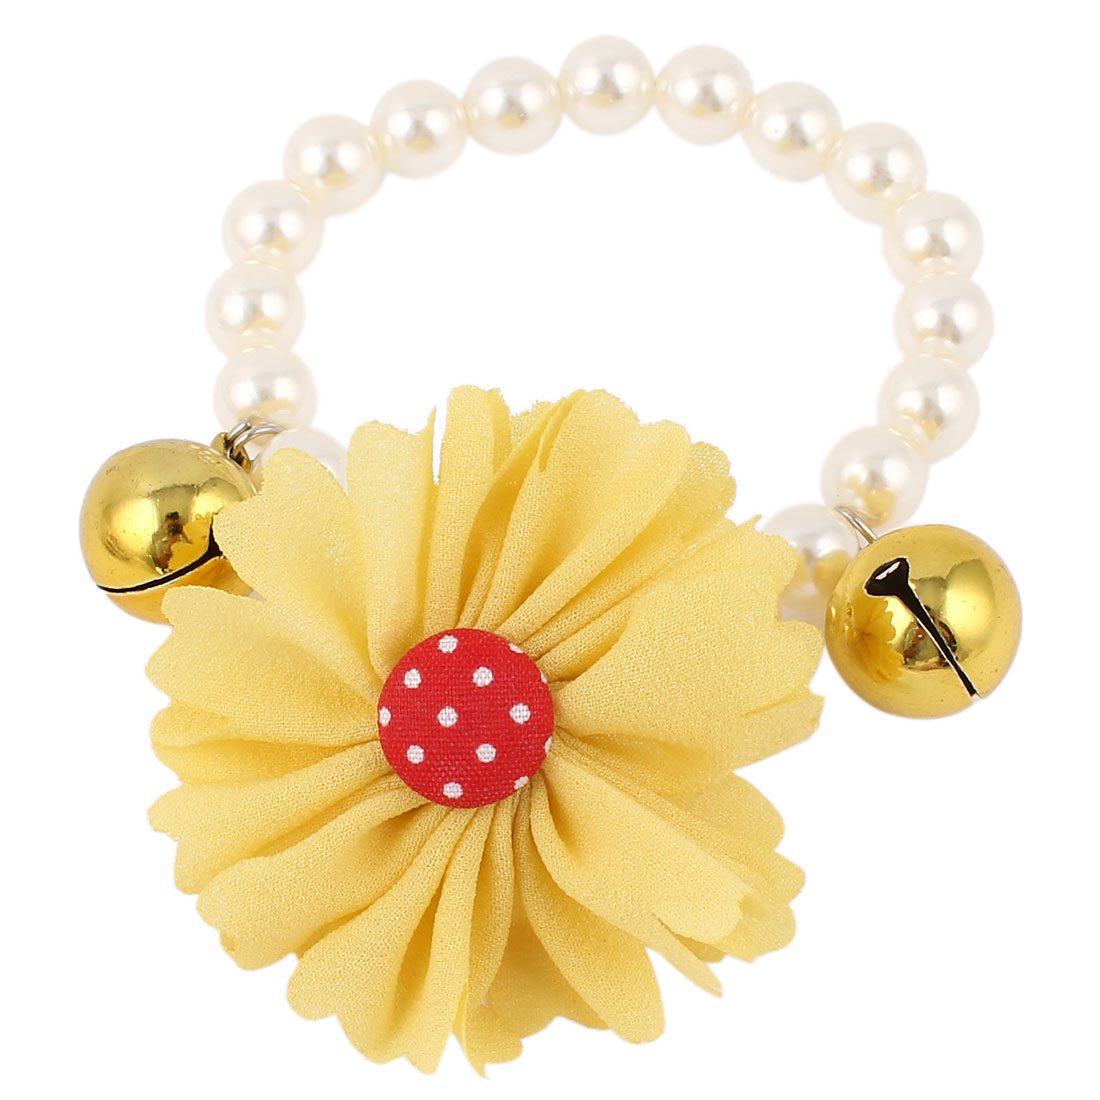 Metal Bell Pendant Flower Accent Pet Dog Plastic Beads Pearls Collar Necklace White Yellow XS